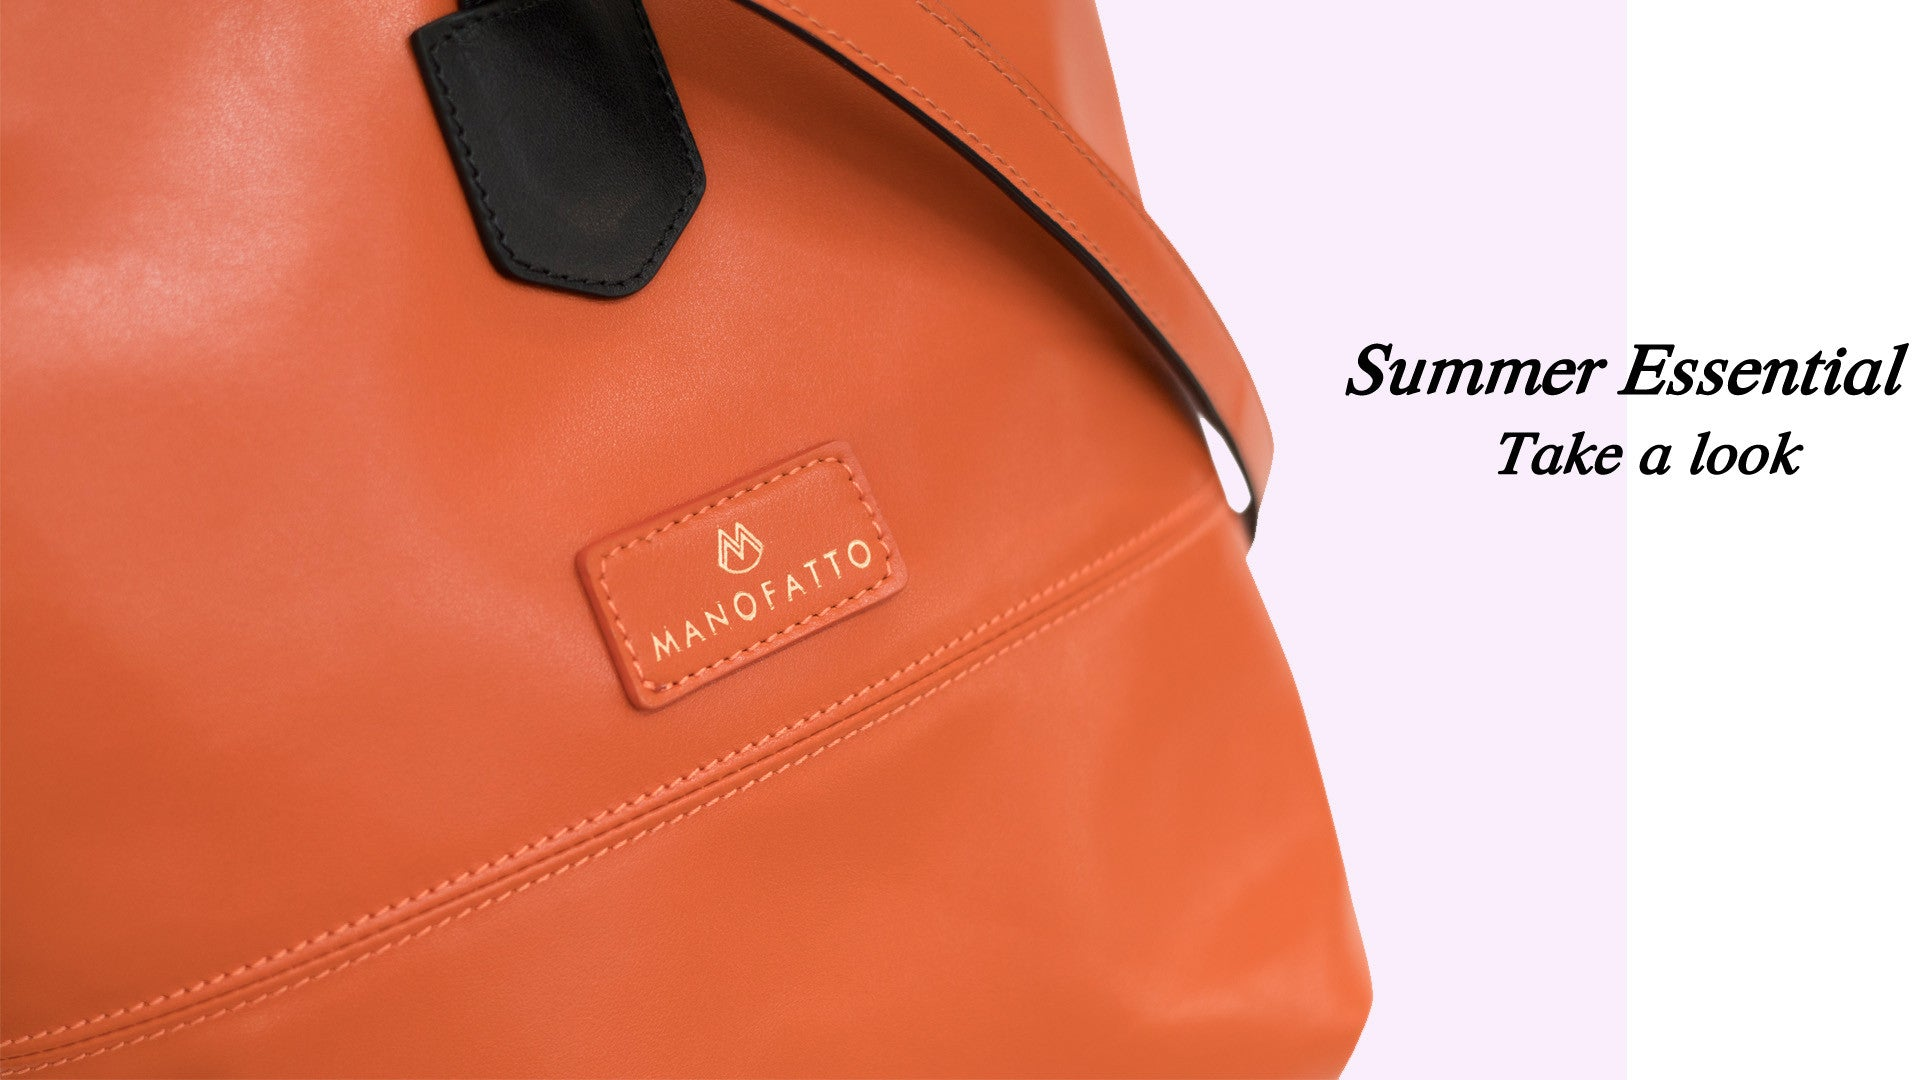 manofatto-handcrafted-leather-tote-bag-orange